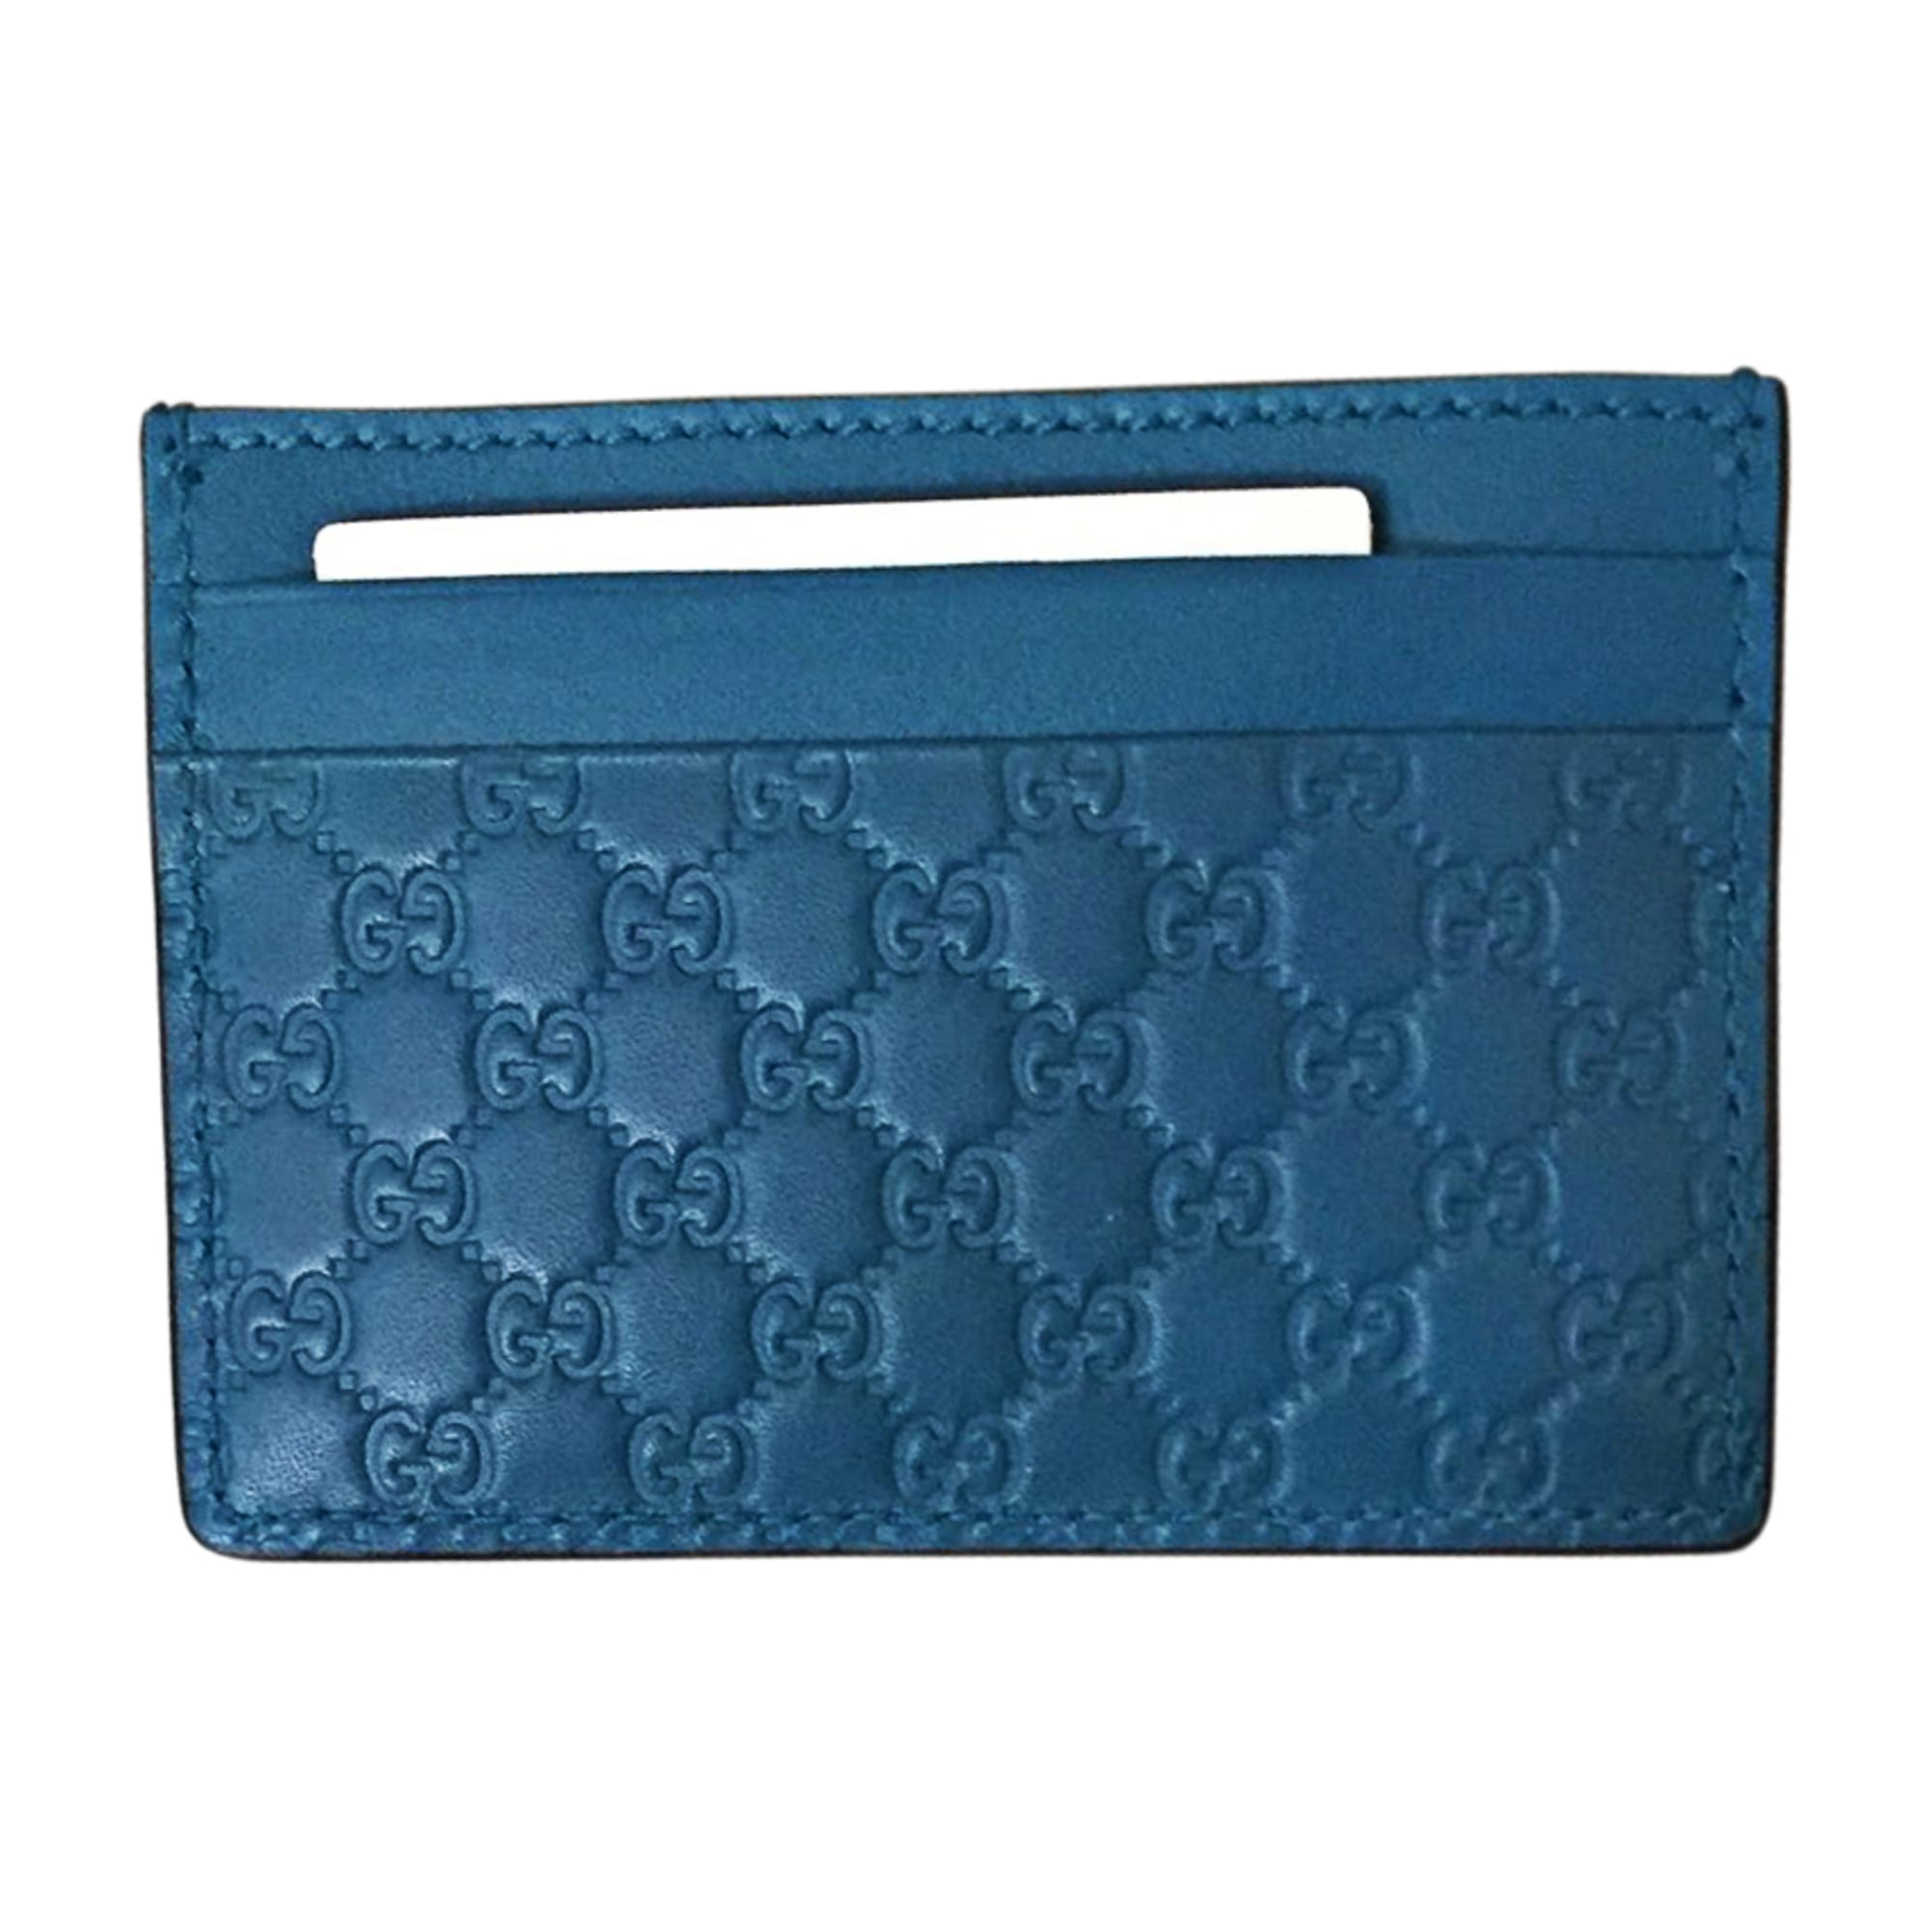 Card Case GUCCI Blue, navy, turquoise